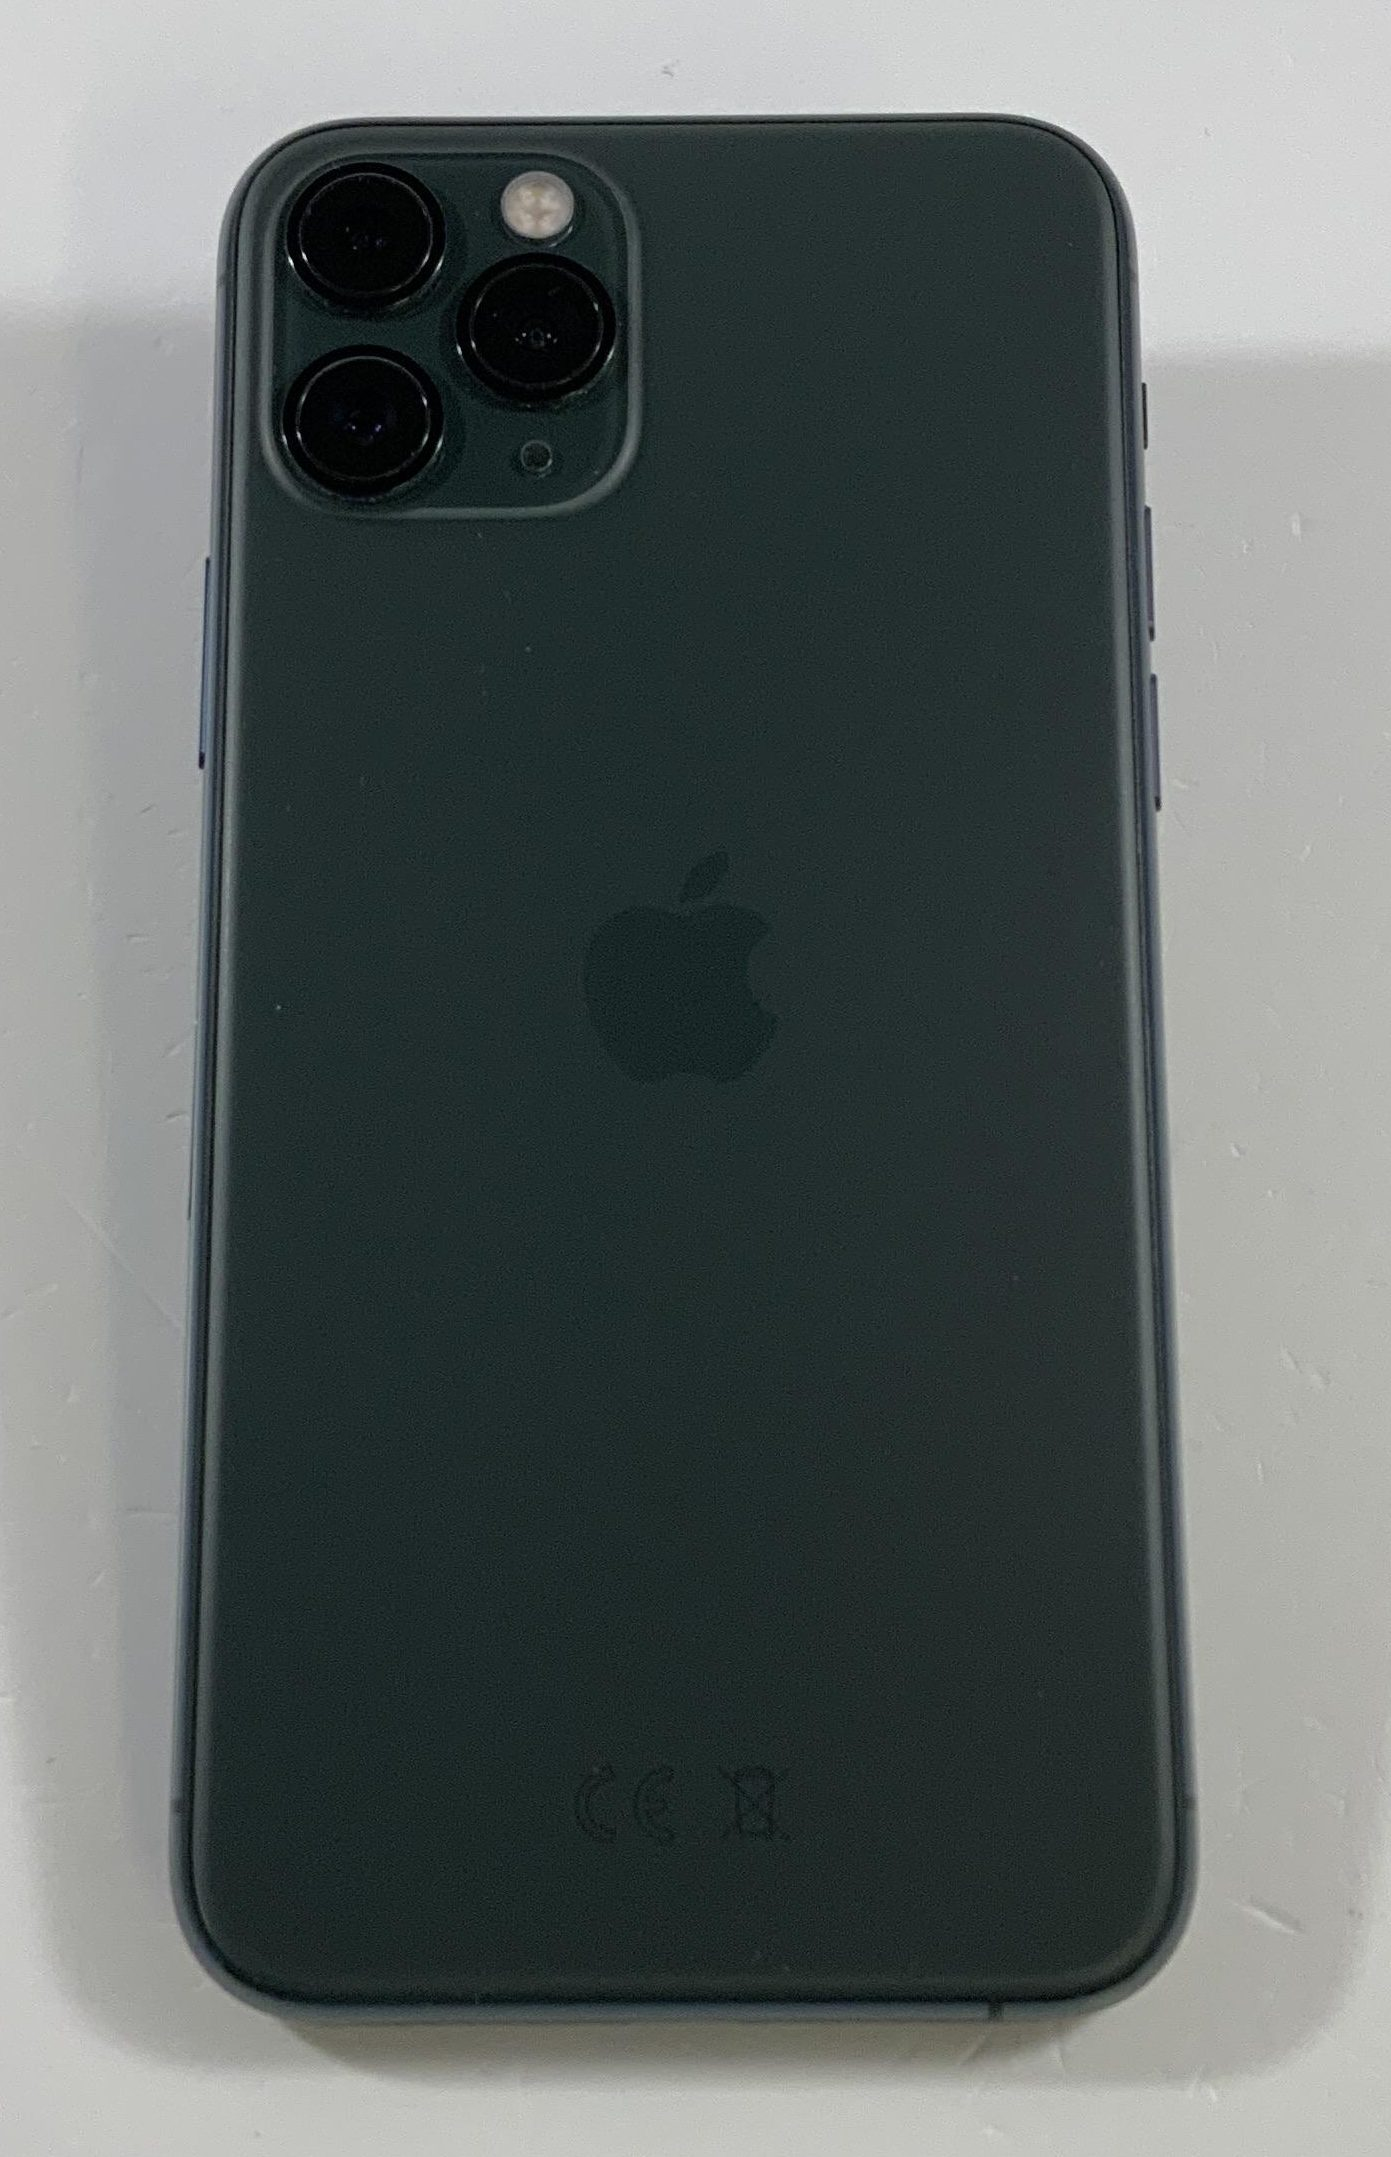 iPhone 11 Pro 256GB, 256GB, Midnight Green, immagine 2